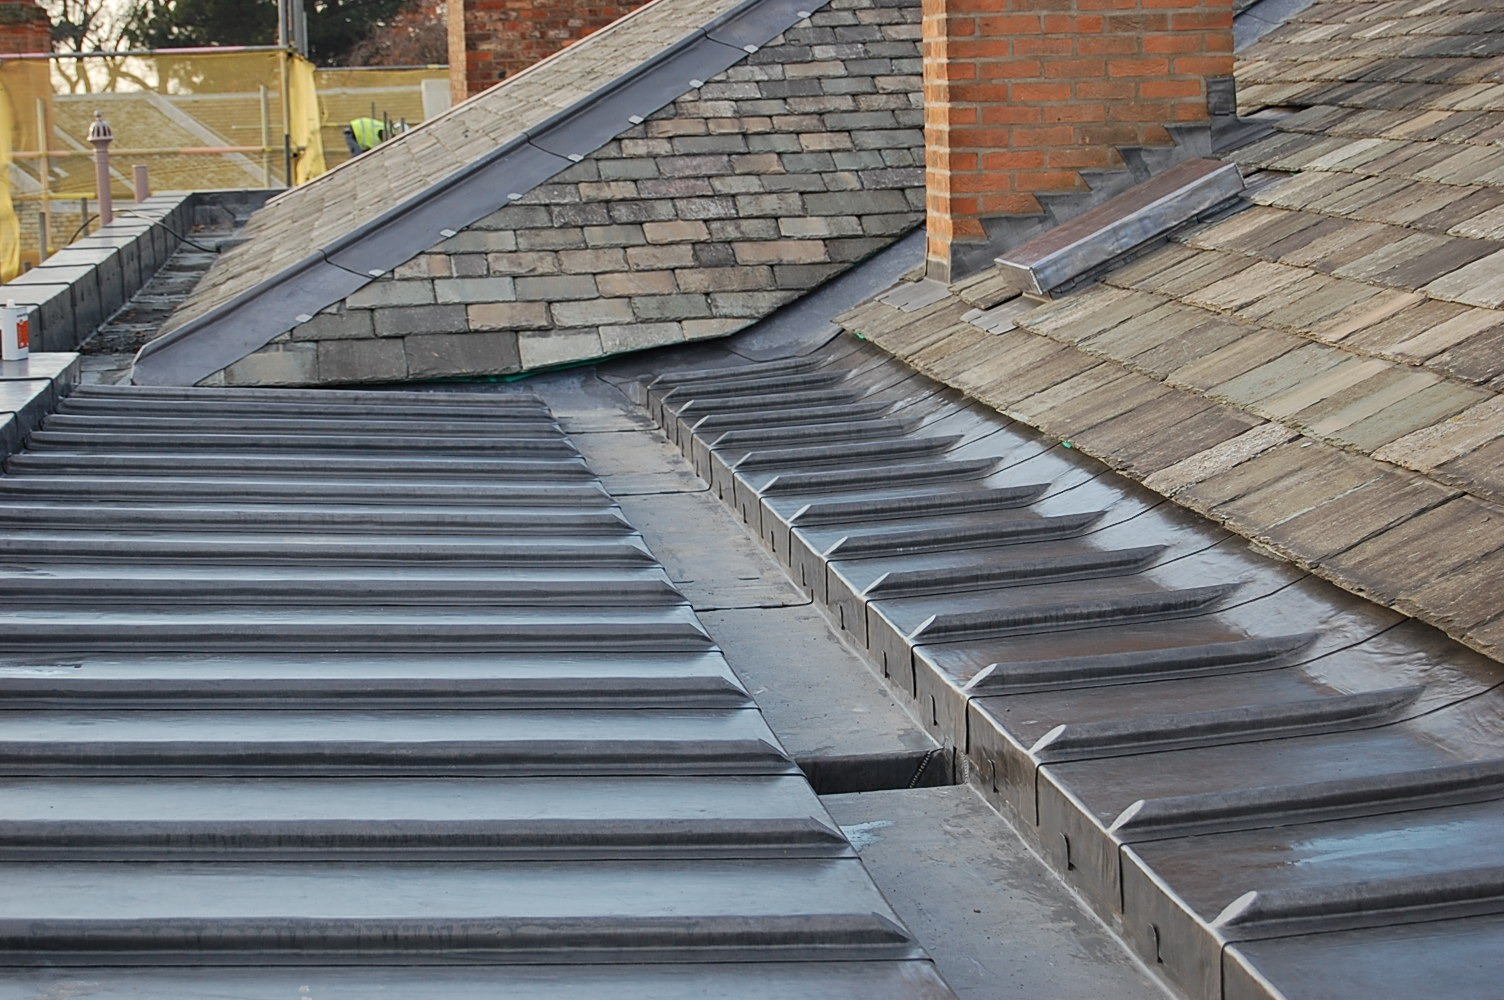 Fully supported and fully compliant lead roofing. Heritage roofing services undertaken by skilled craftsmen